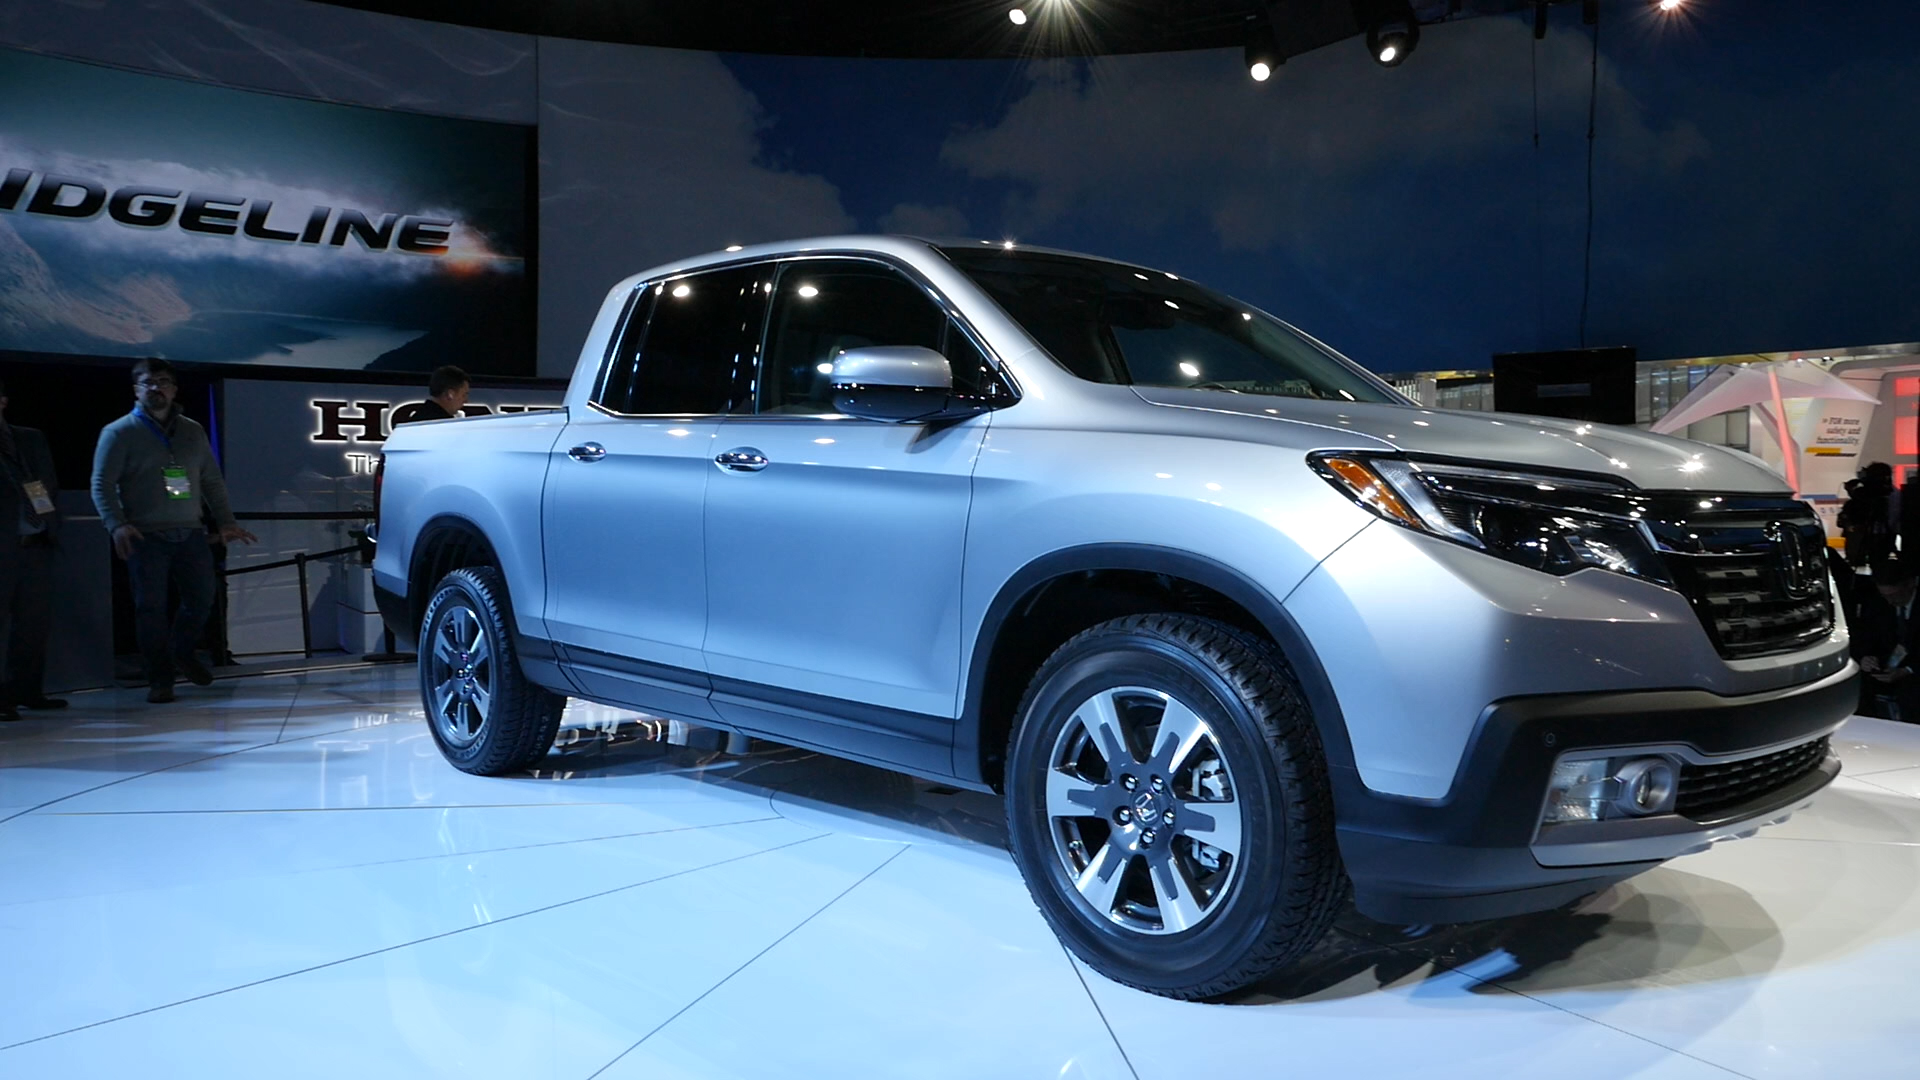 Video: Honda brings back the Ridgeline at the North American International Auto Show